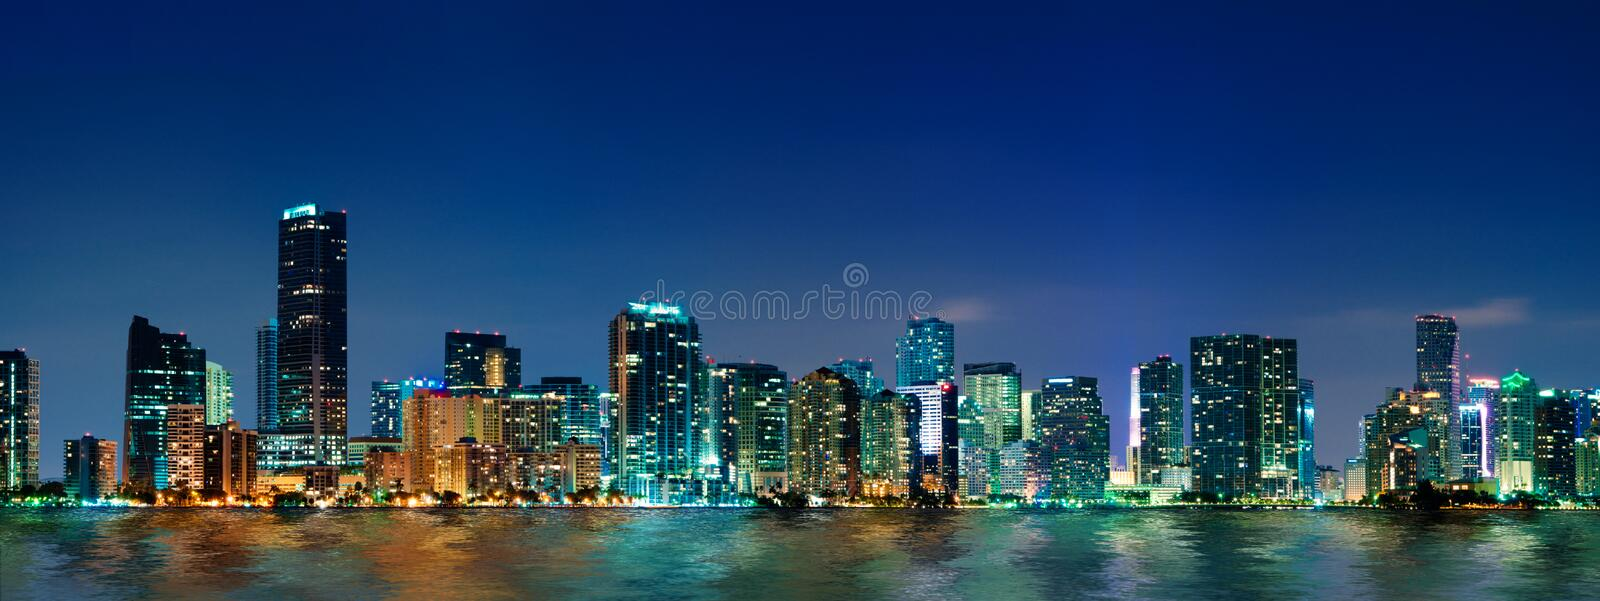 Panorama da skyline de Miami fotos de stock royalty free